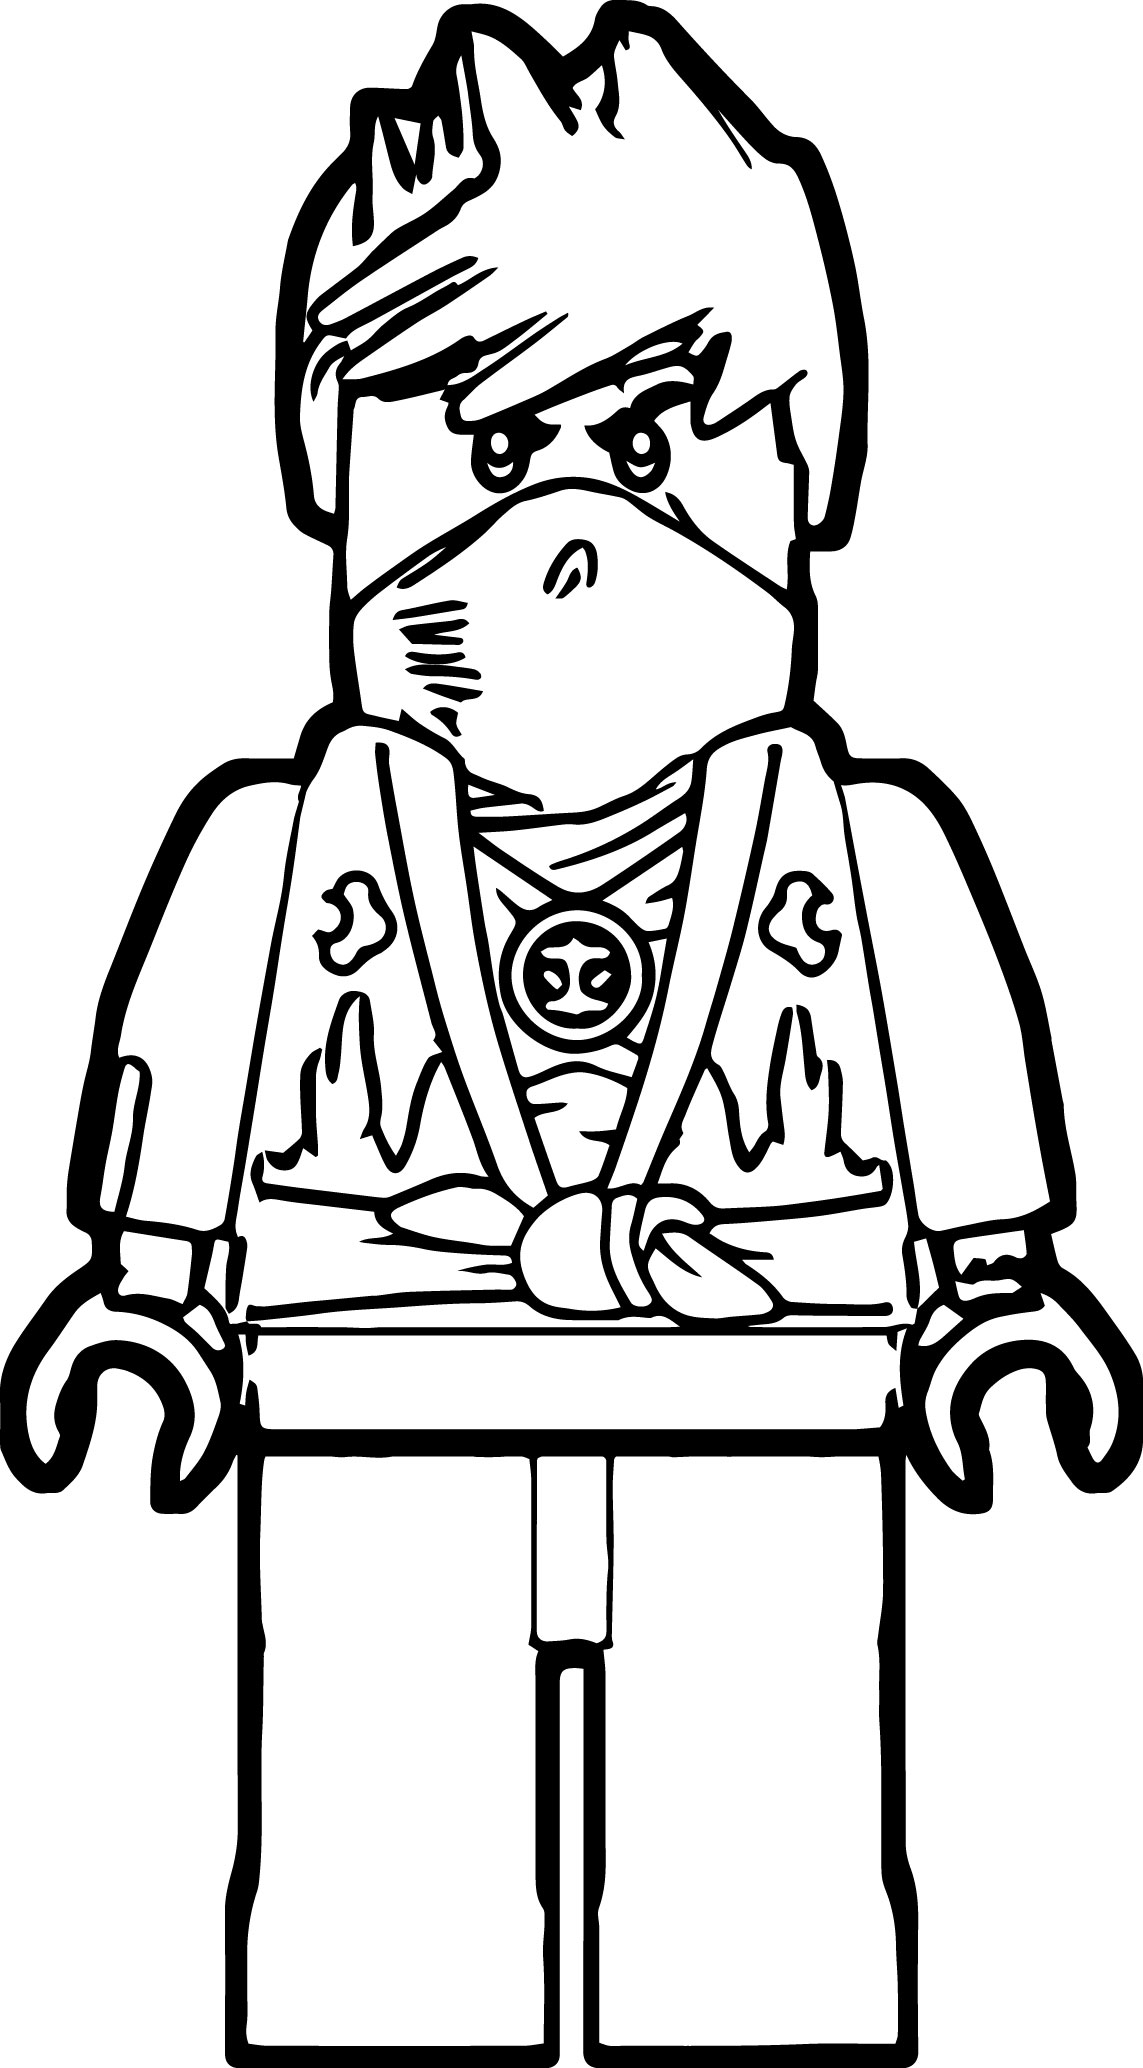 lego colouring in pages free printable lego coloring pages for kids colouring lego in pages